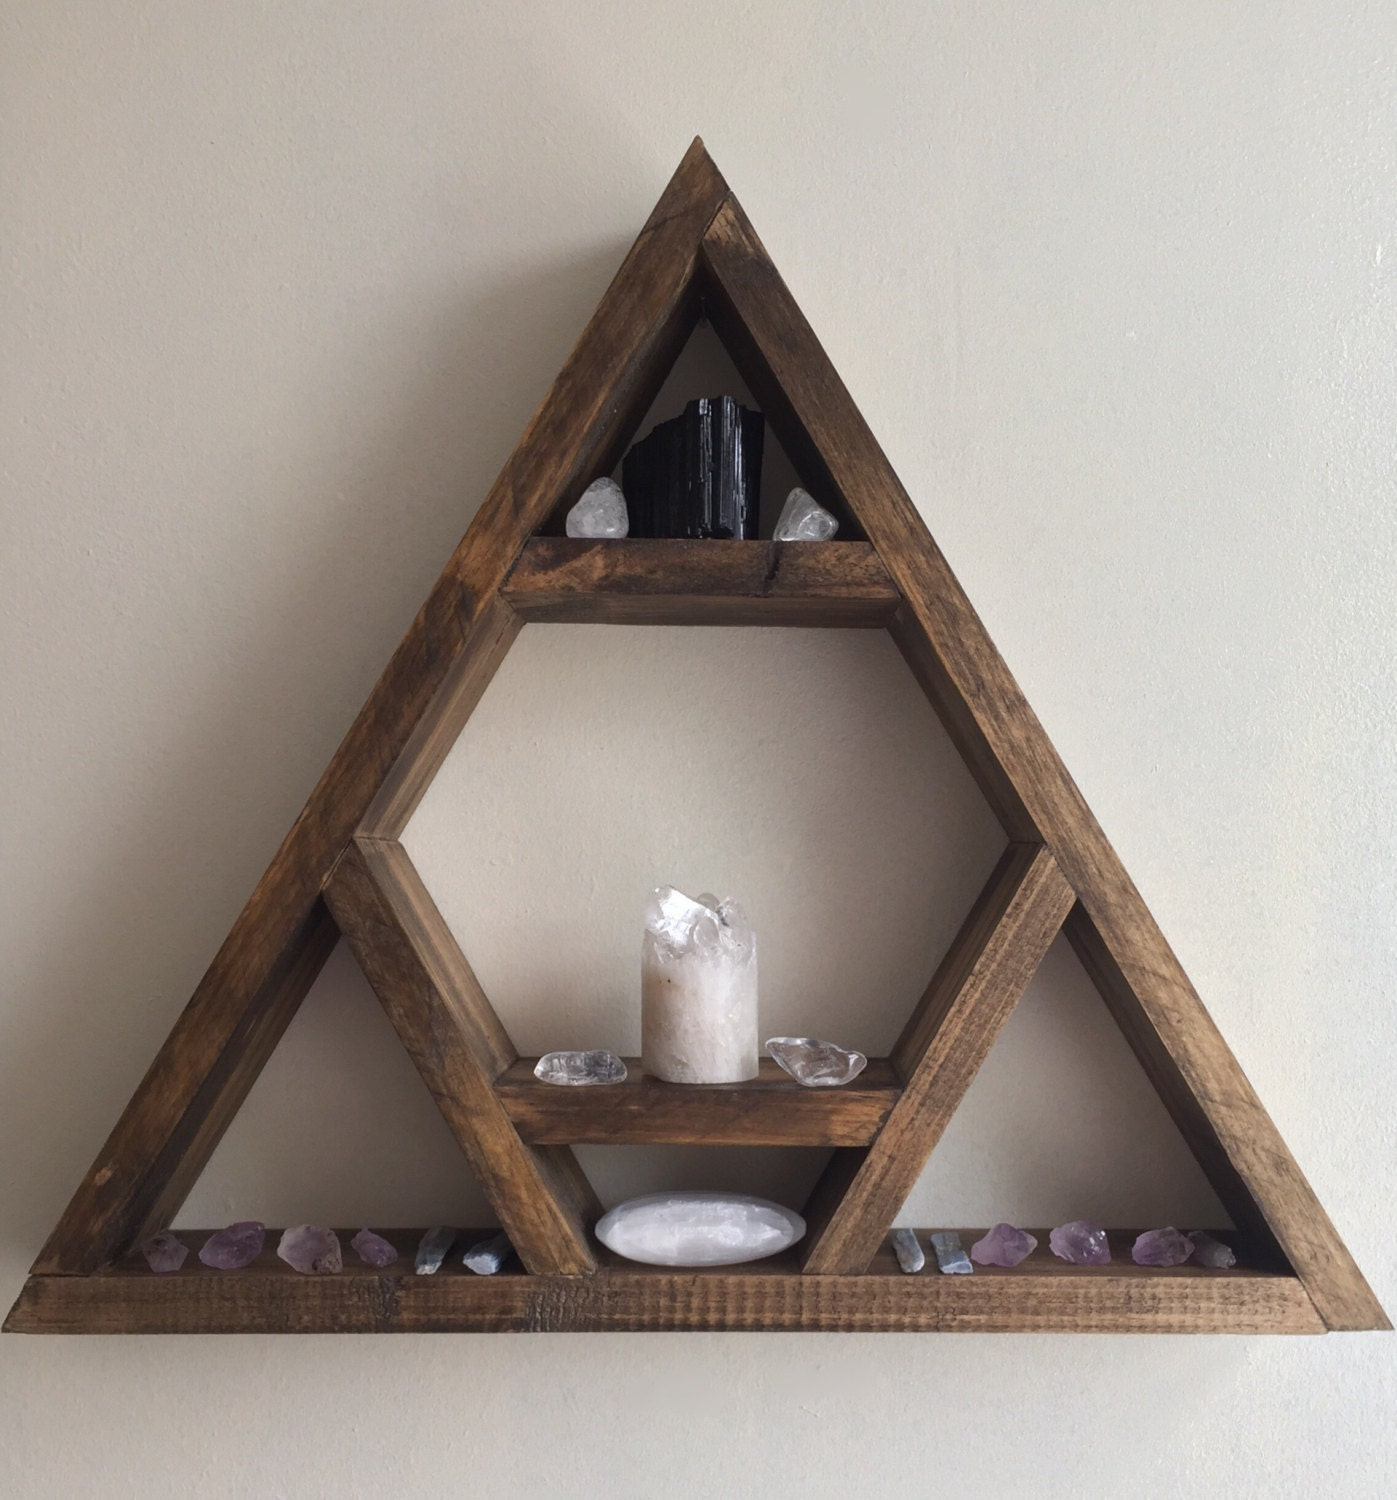 Altar shelf the original designer chcakra triangle shelf - Triangular bookshelf ...